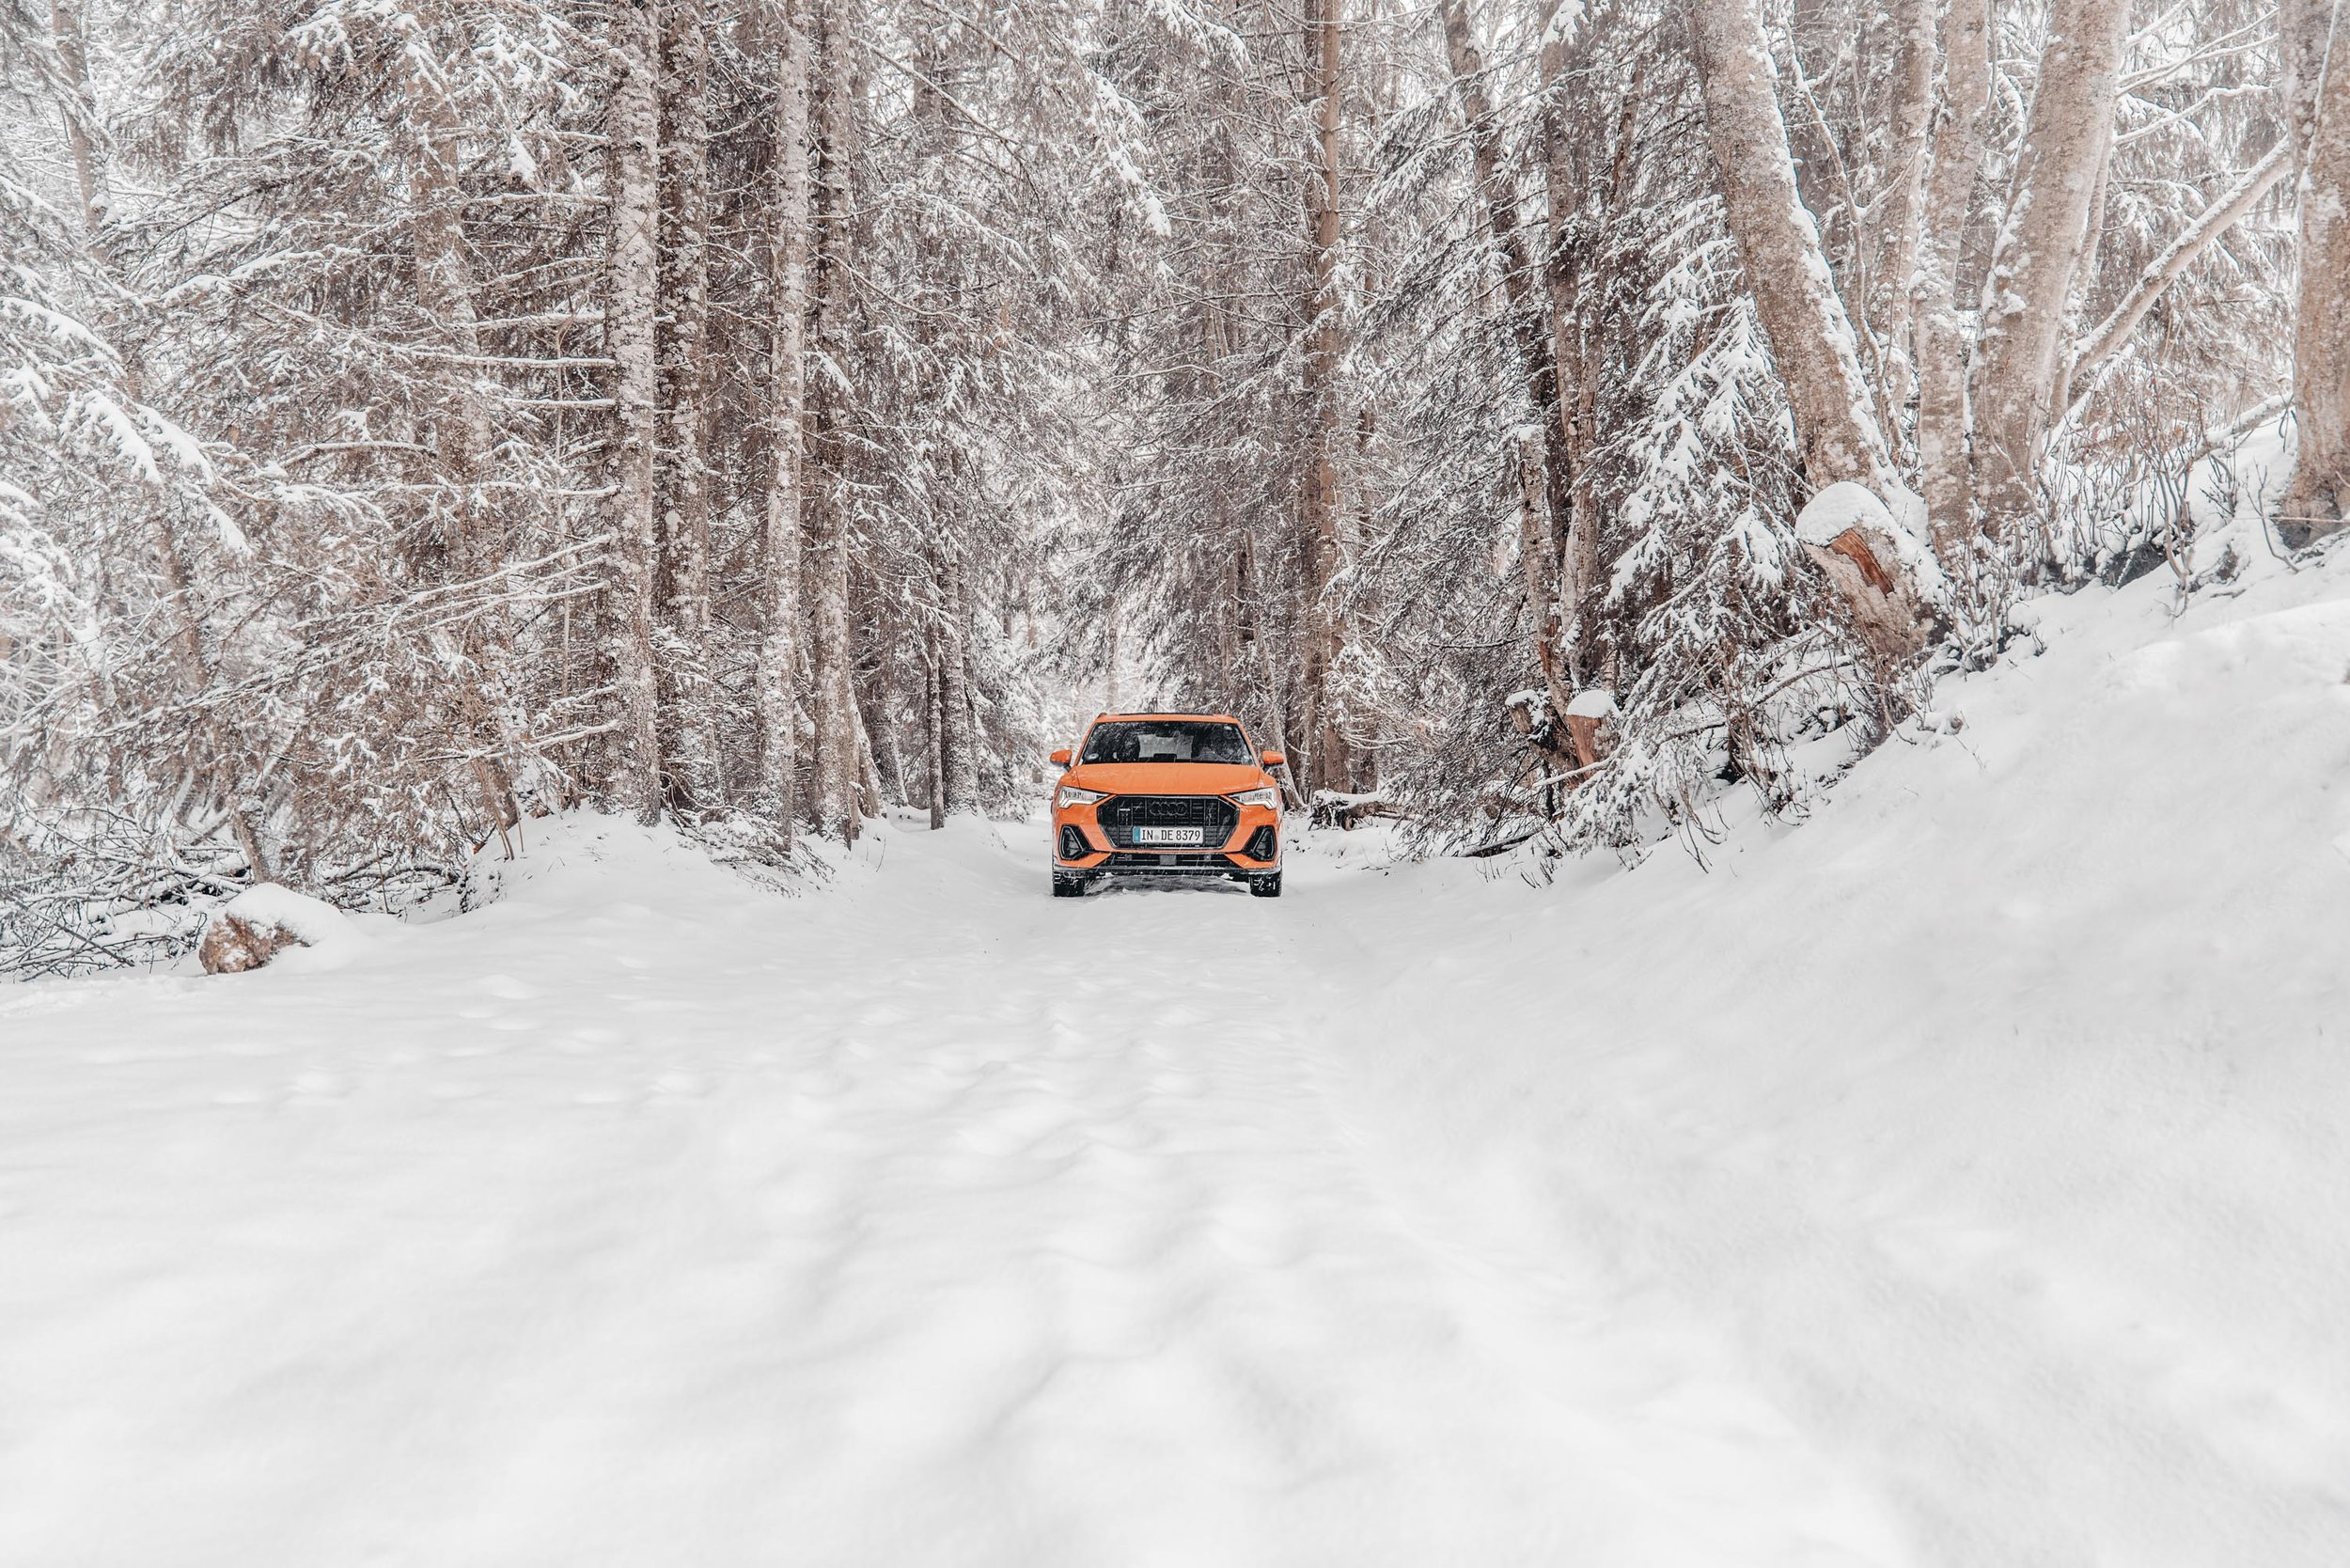 Maximilian-Otto_Best-of-the-Alps_Roadtrip_Winter-2018_02.jpg